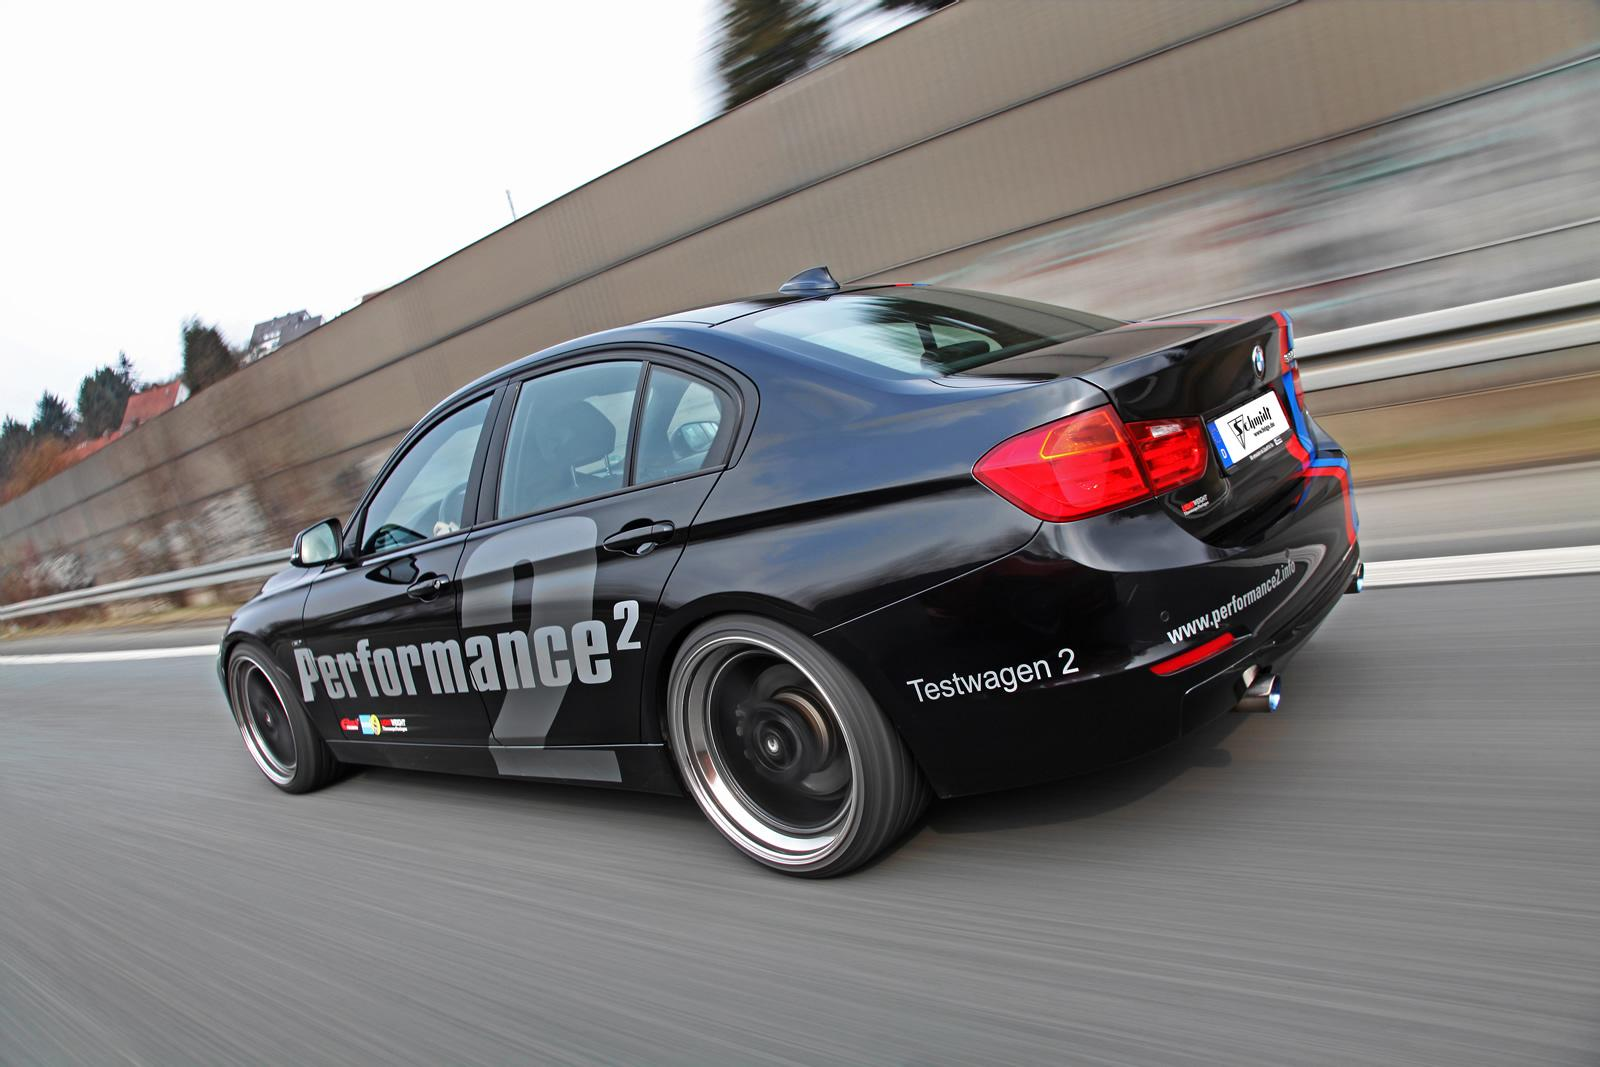 Schmidt Revolution BMW 335i two-stage tuning package